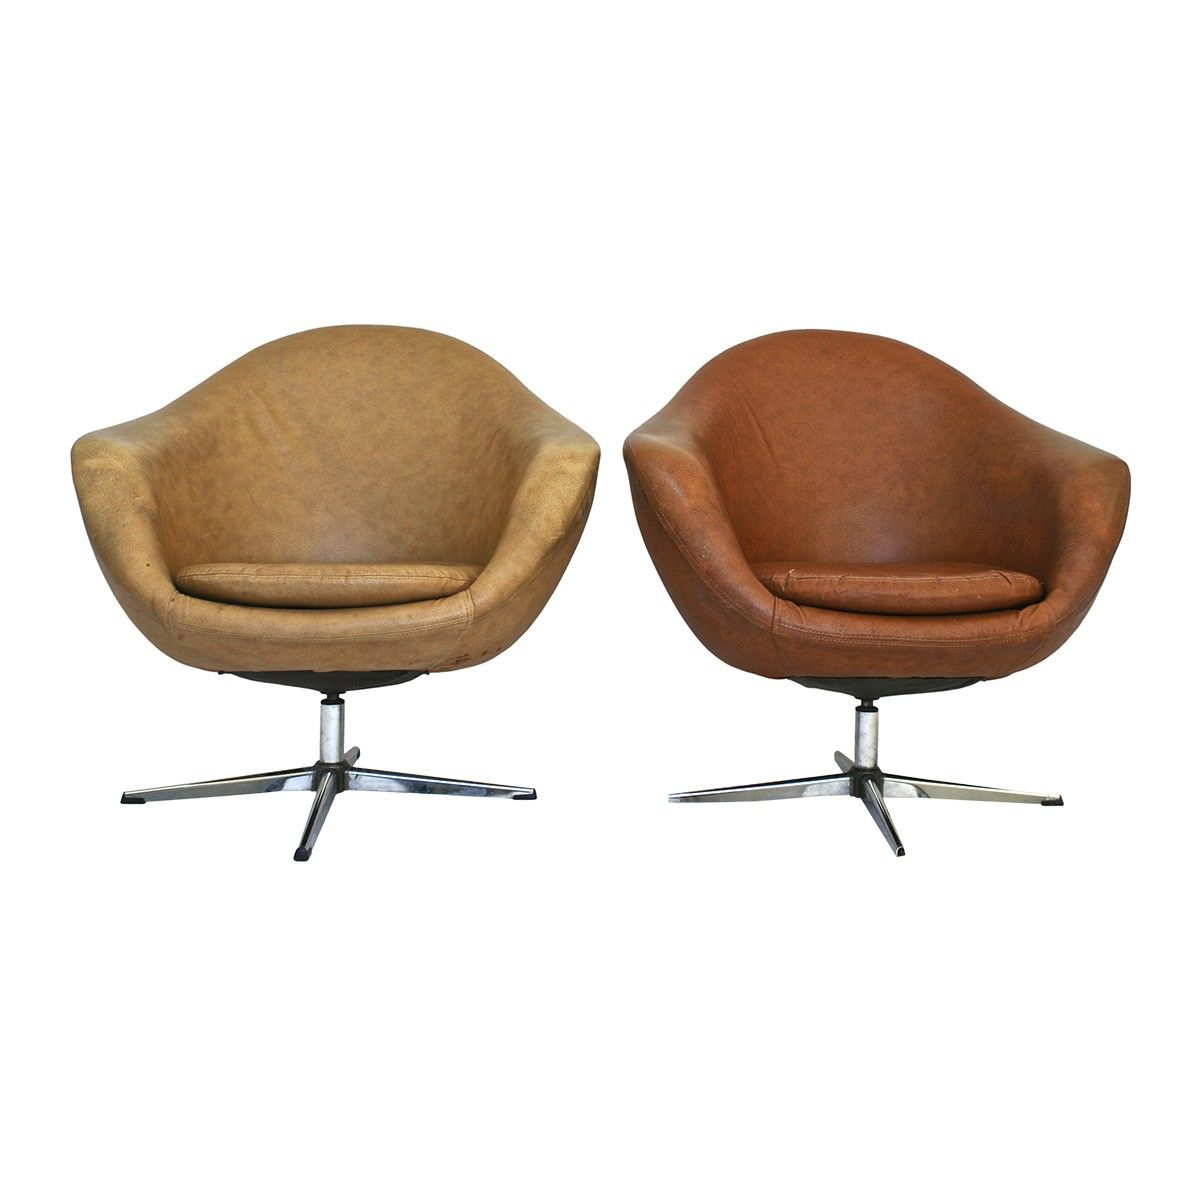 Awe Inspiring Mid Century Modern Swivel Chairs Living Room Leather Home Interior And Landscaping Mentranervesignezvosmurscom